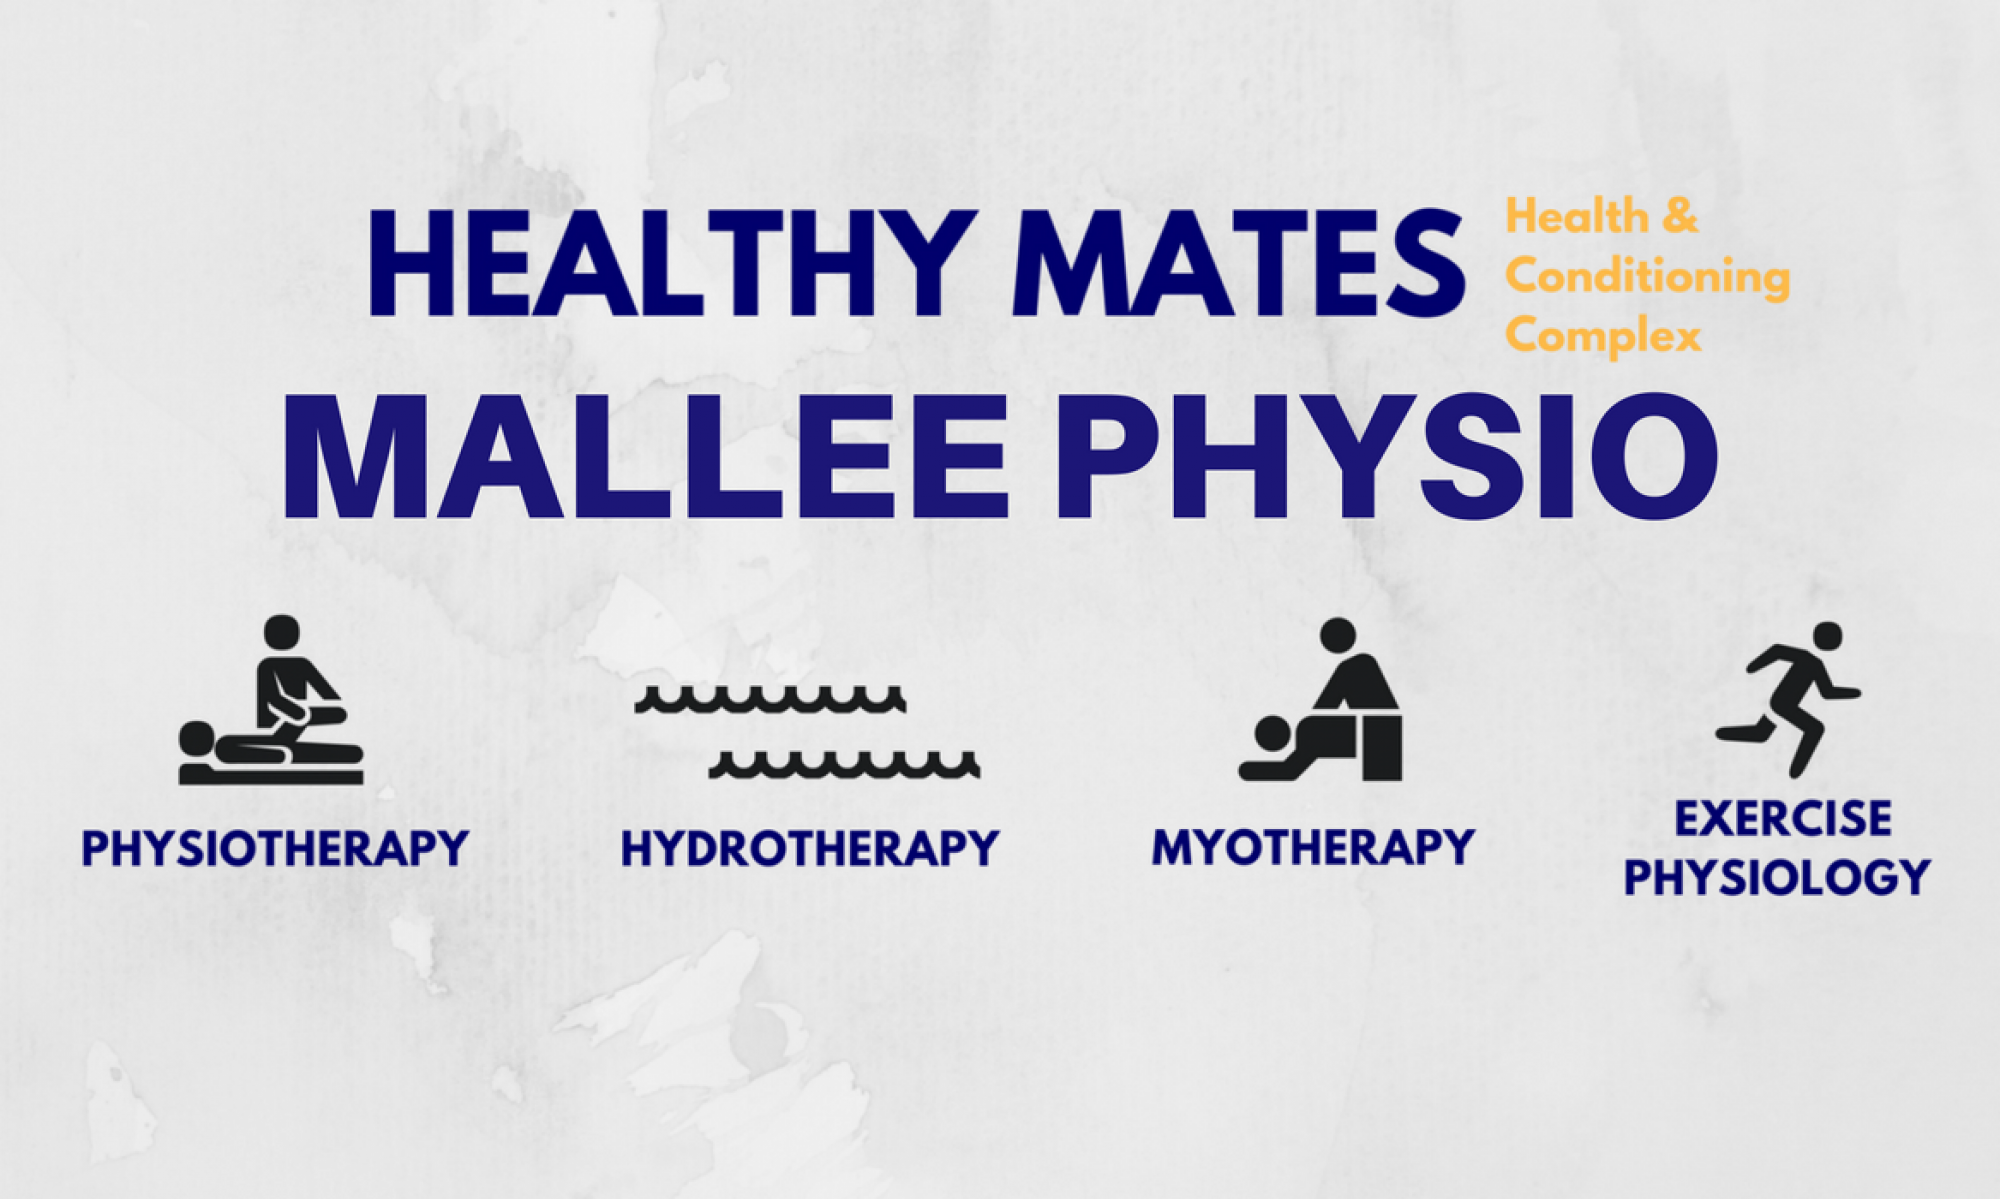 Mallee Physio